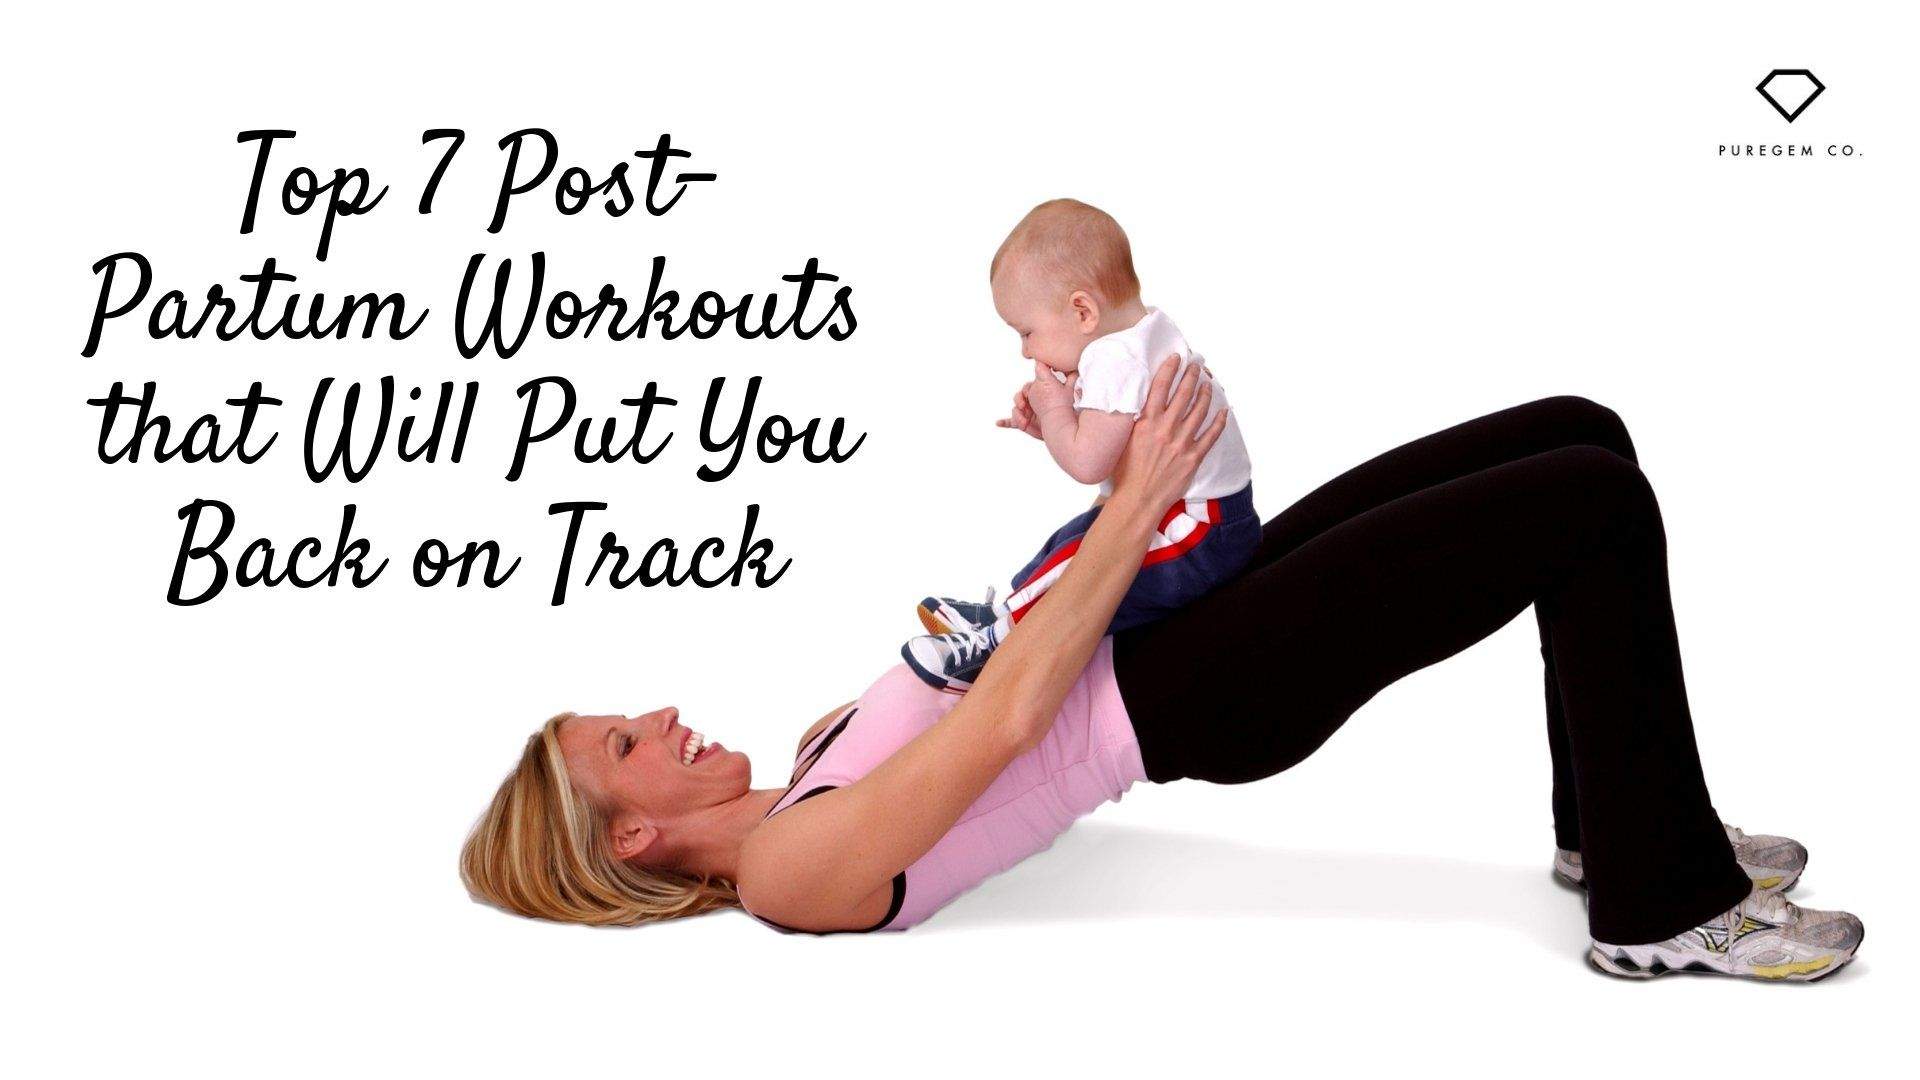 Top 7 Post-Partum Workouts that Will Put You Back on Track